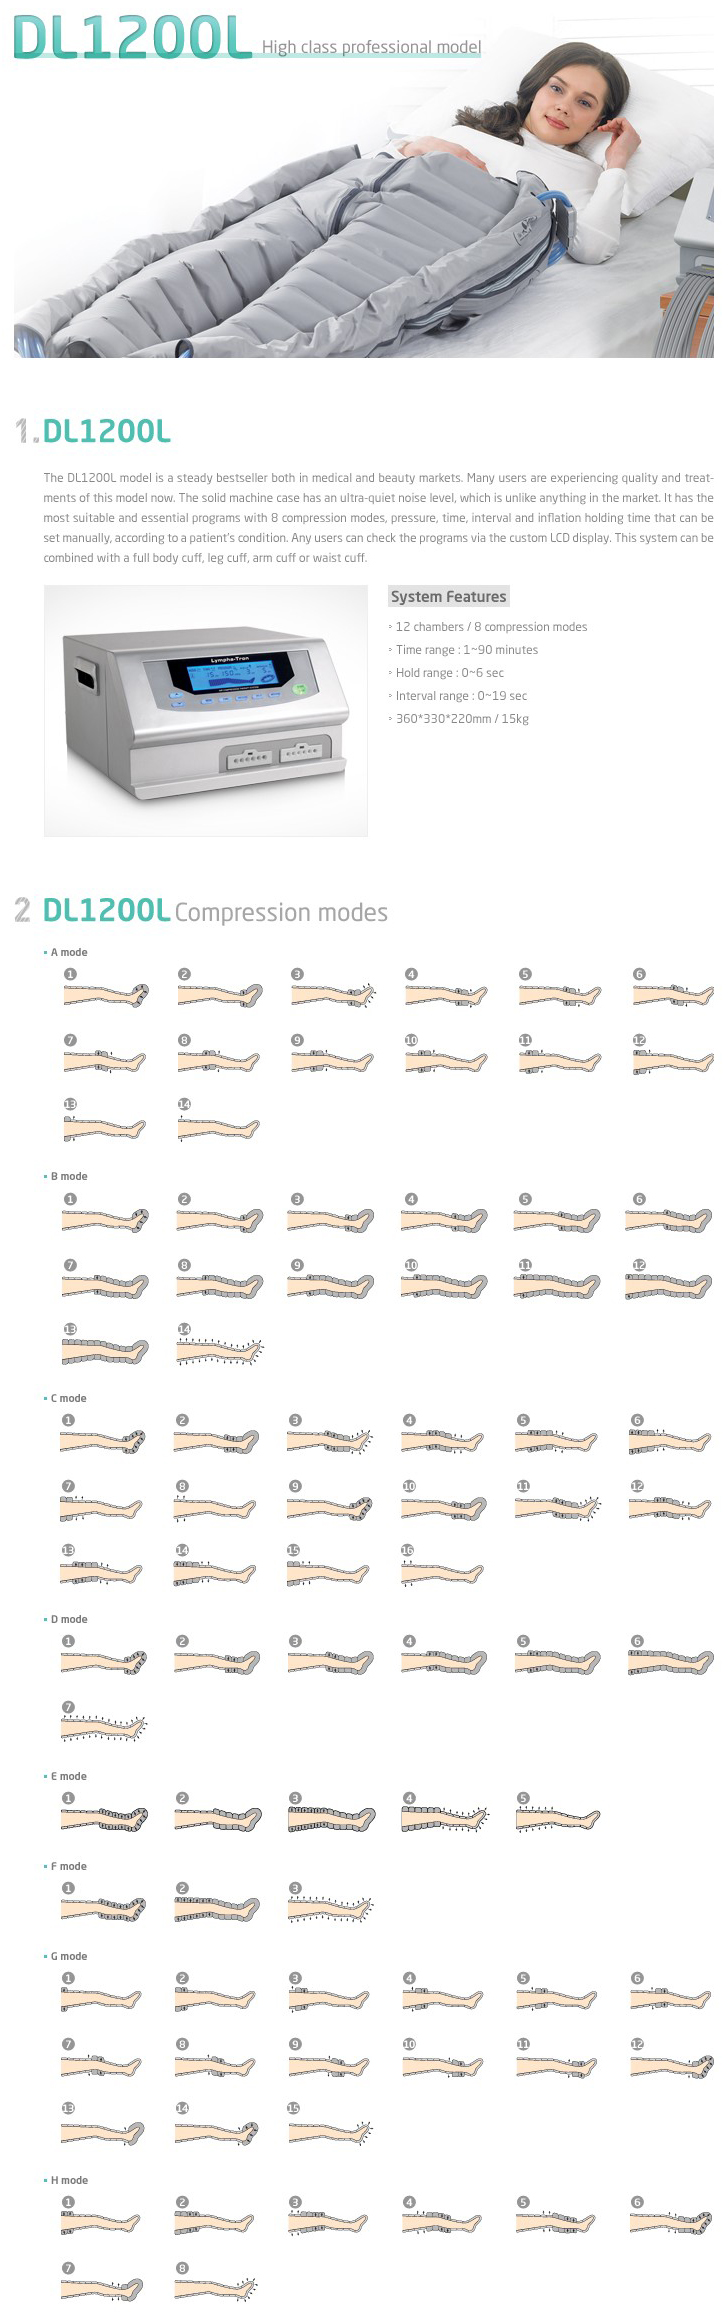 DS MAREF Air Compression Therapy System DL-1200L